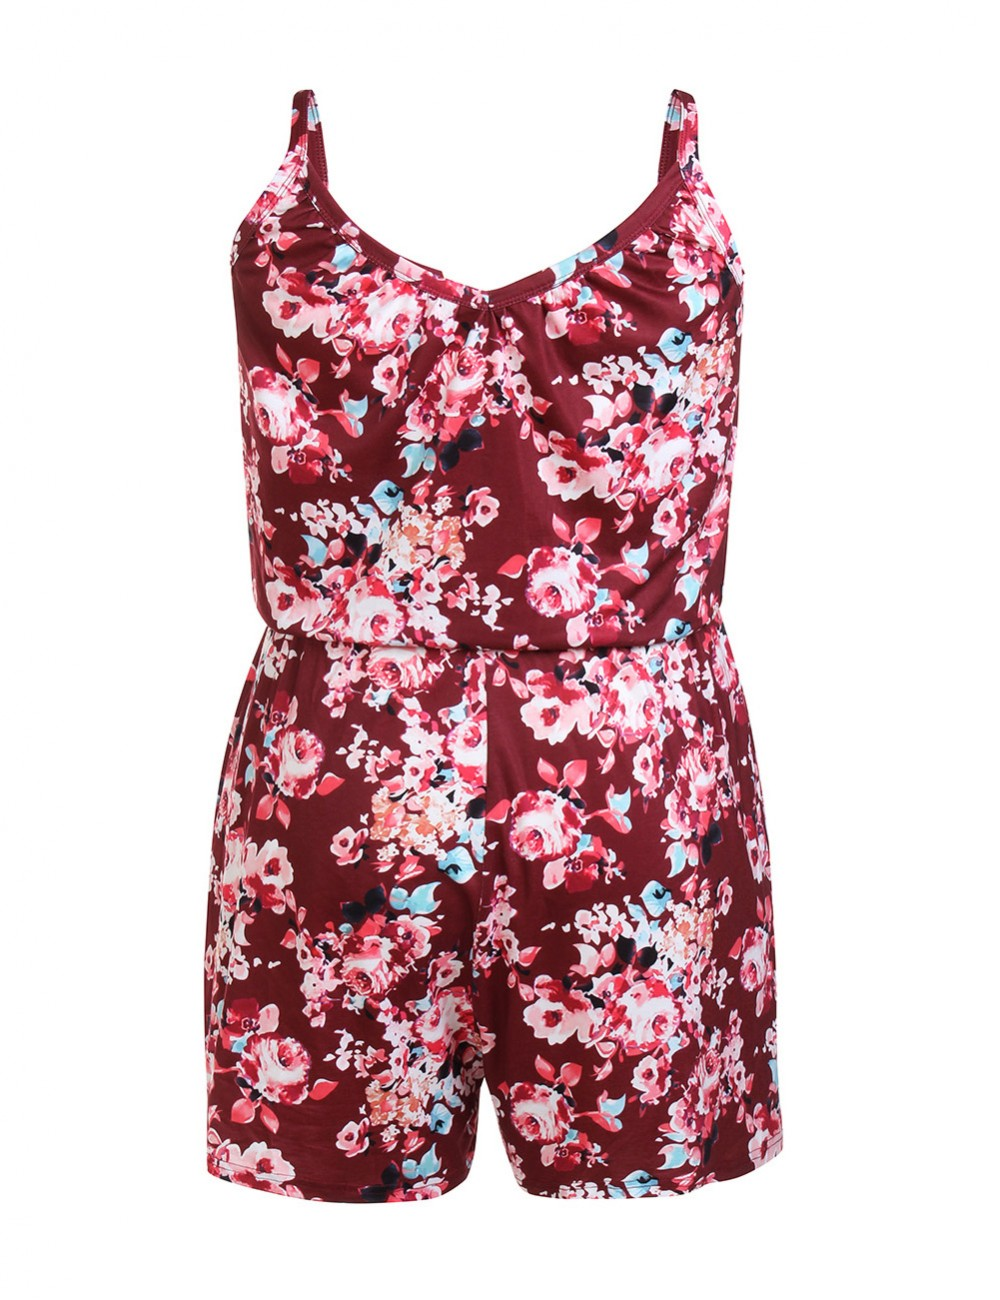 Inviting Wine Red Queen Size Jumpsuit Flower Print Glamor Women